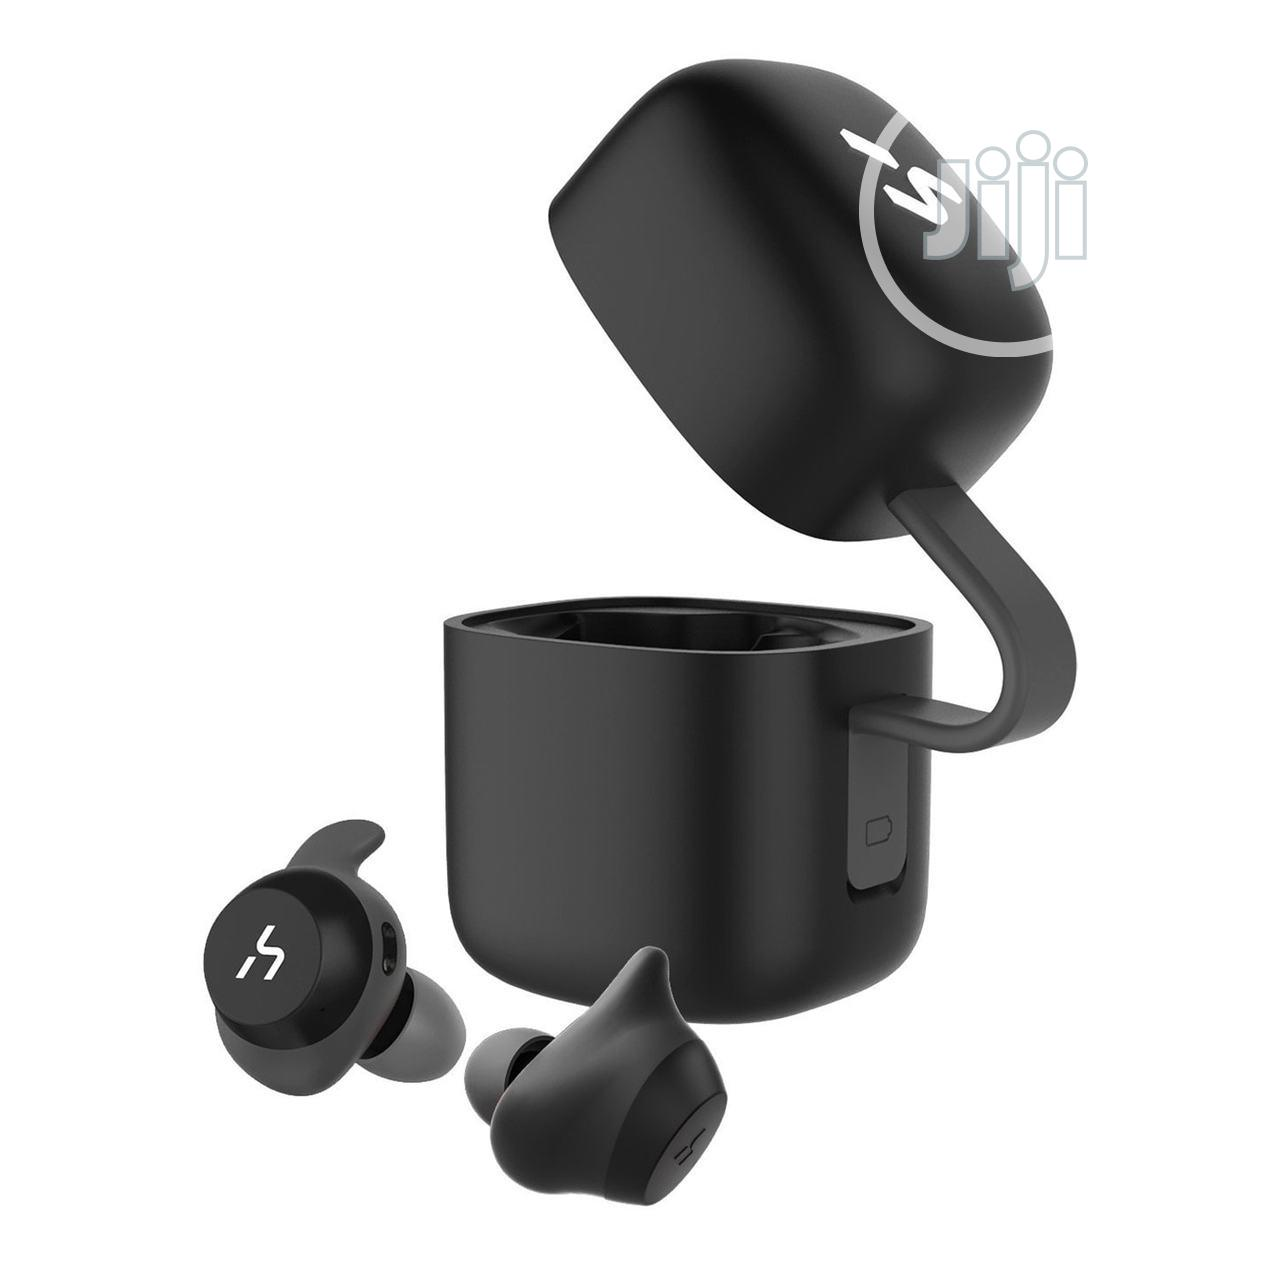 Archive: HAVIT G1 Series TWS True Wireless Earbuds, Waterproof, Bluetooth 5.0